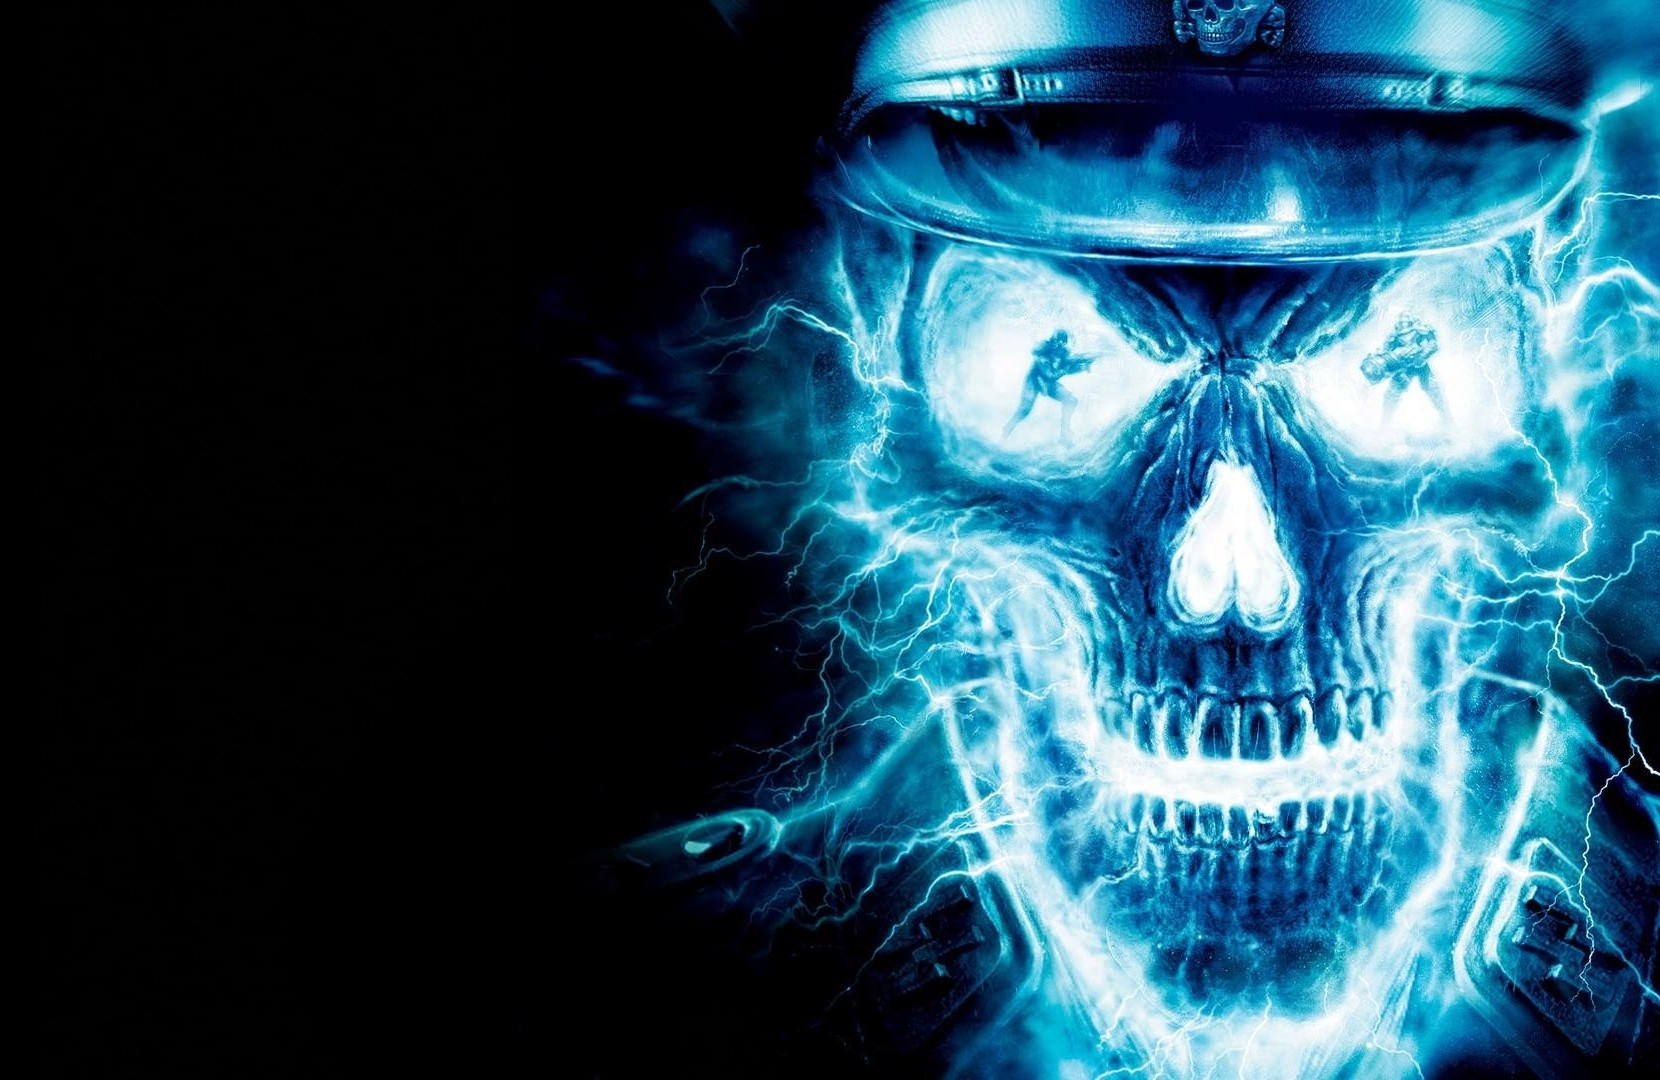 Cool 3d Skull Wallpapers 30 Black Amp Blue Backgrounds Wallpapers Freecreatives